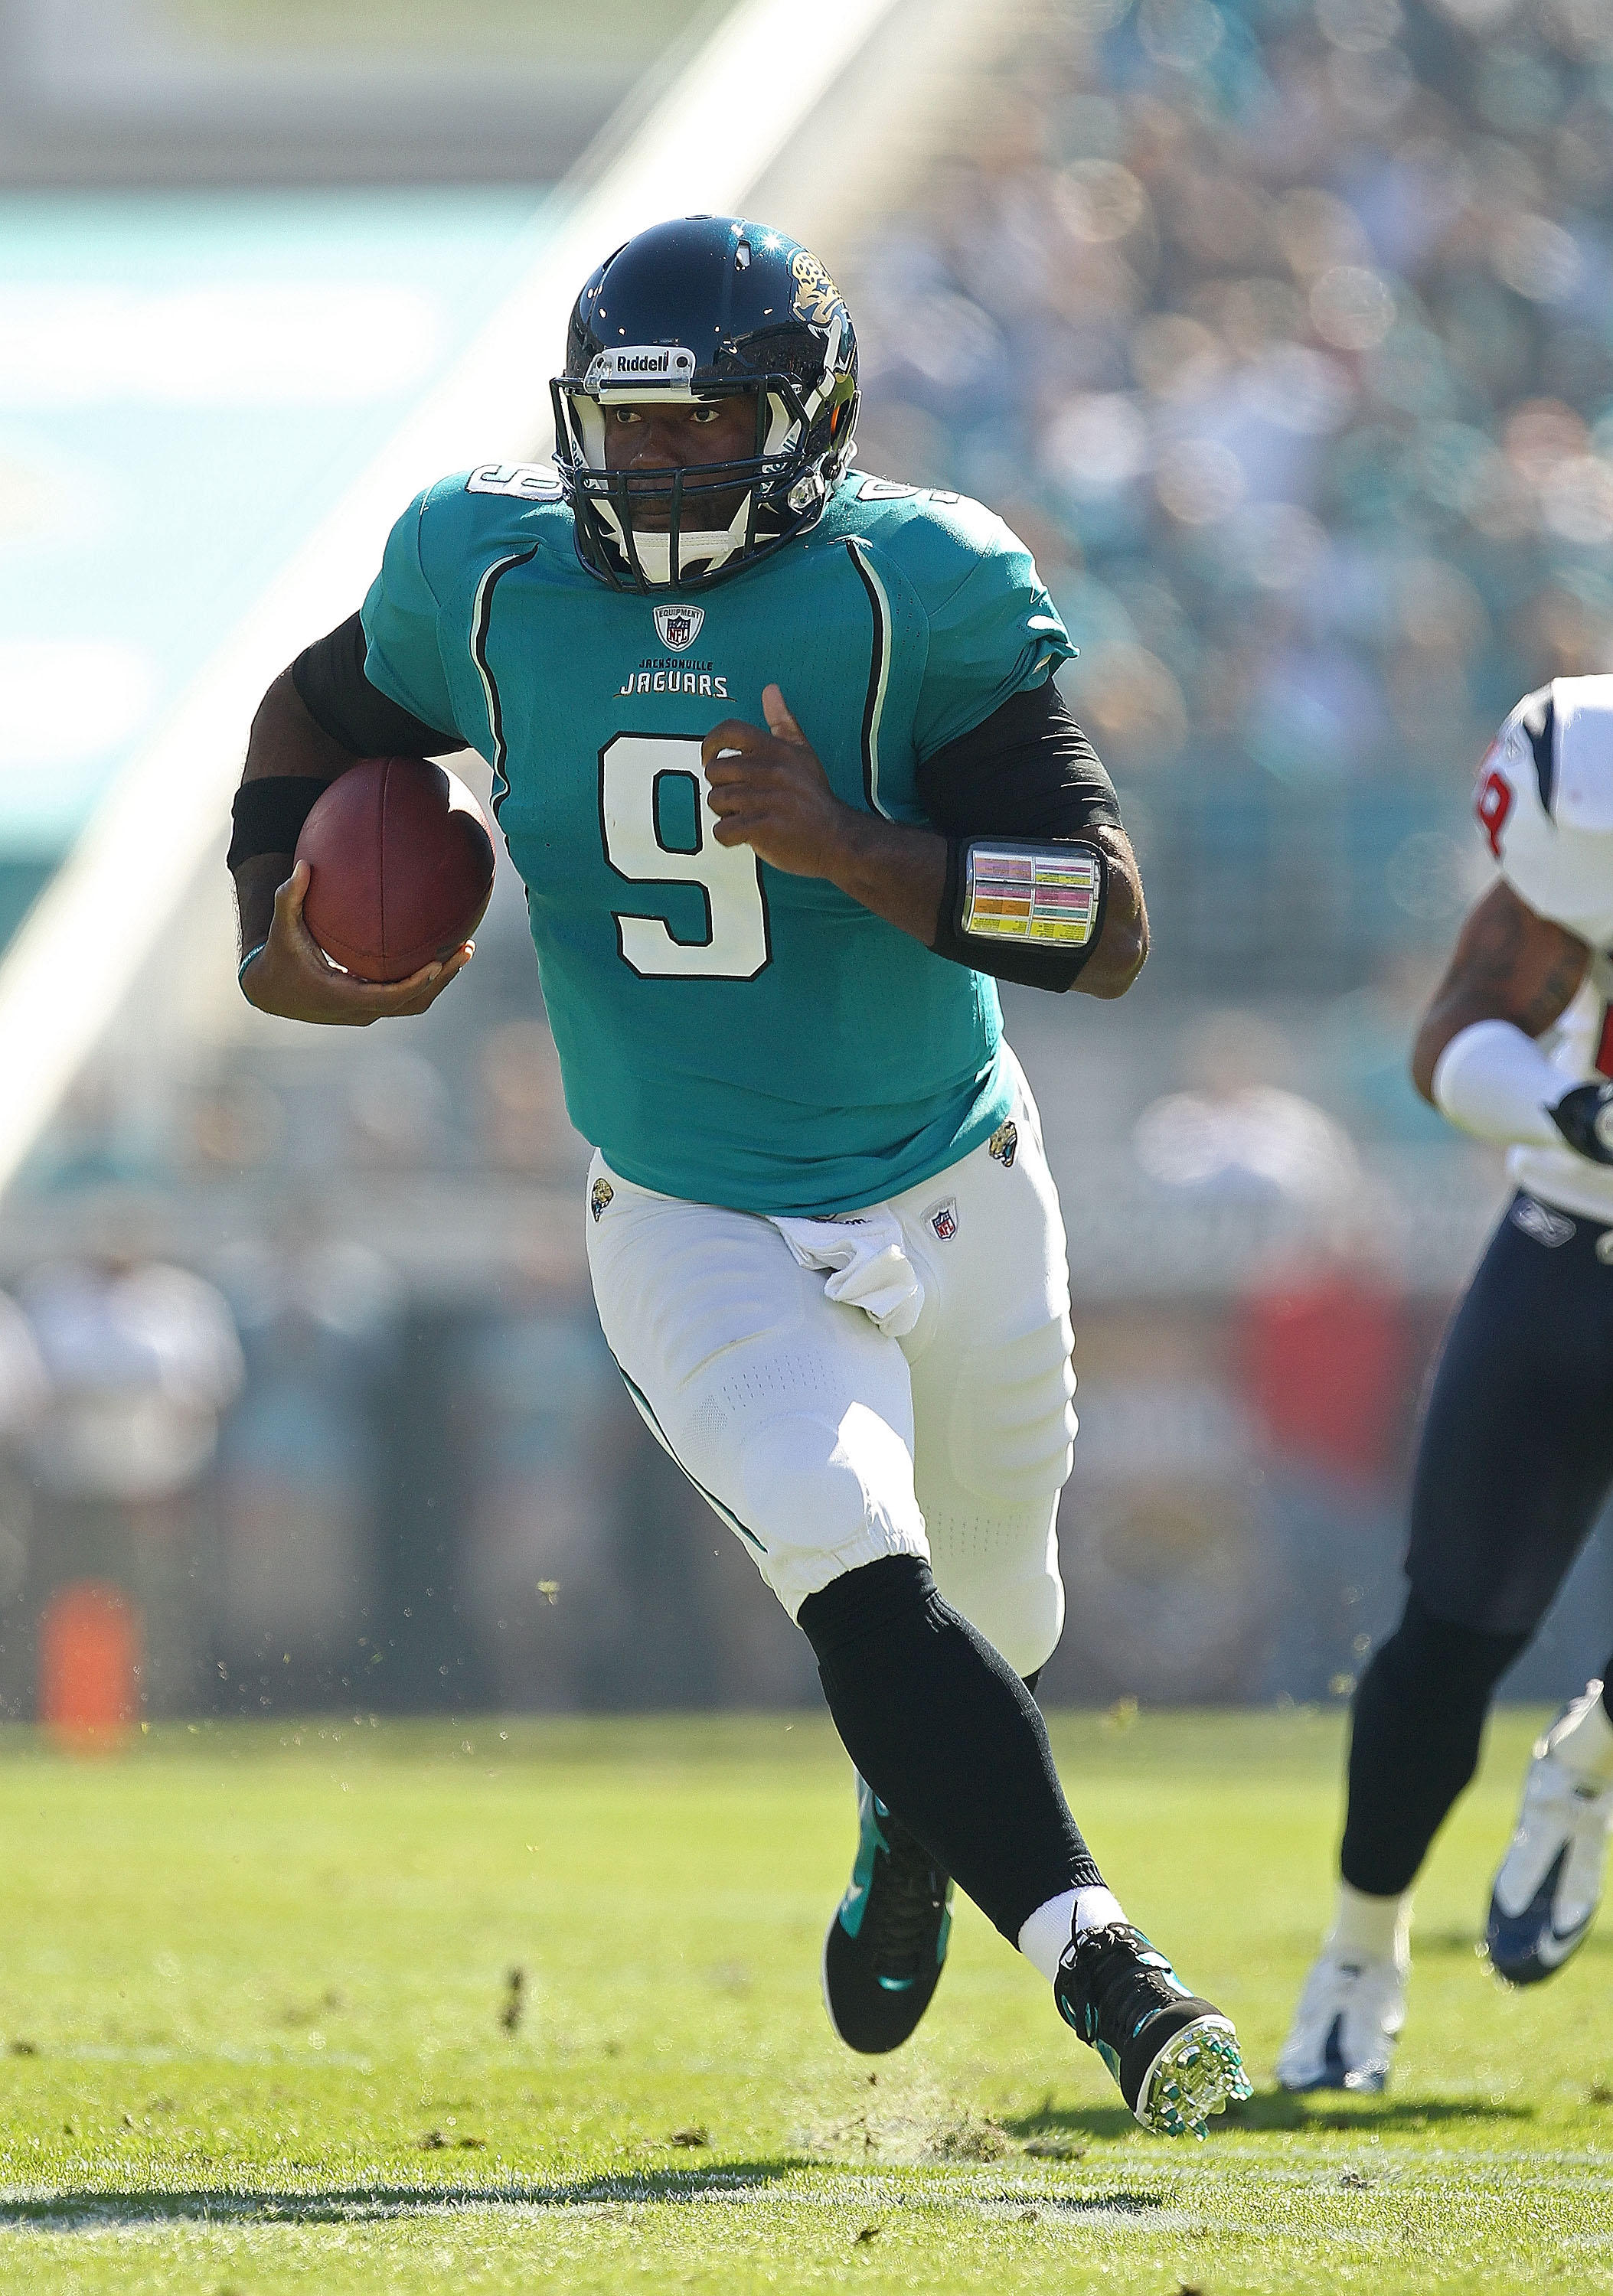 JACKSONVILLE, FL - NOVEMBER 14: David Garrard #9 of the Jacksonville Jaguars runs the ball during a game against the Houston Texans at EverBank Field on November 14, 2010 in Jacksonville, Florida.  (Photo by Mike Ehrmann/Getty Images)